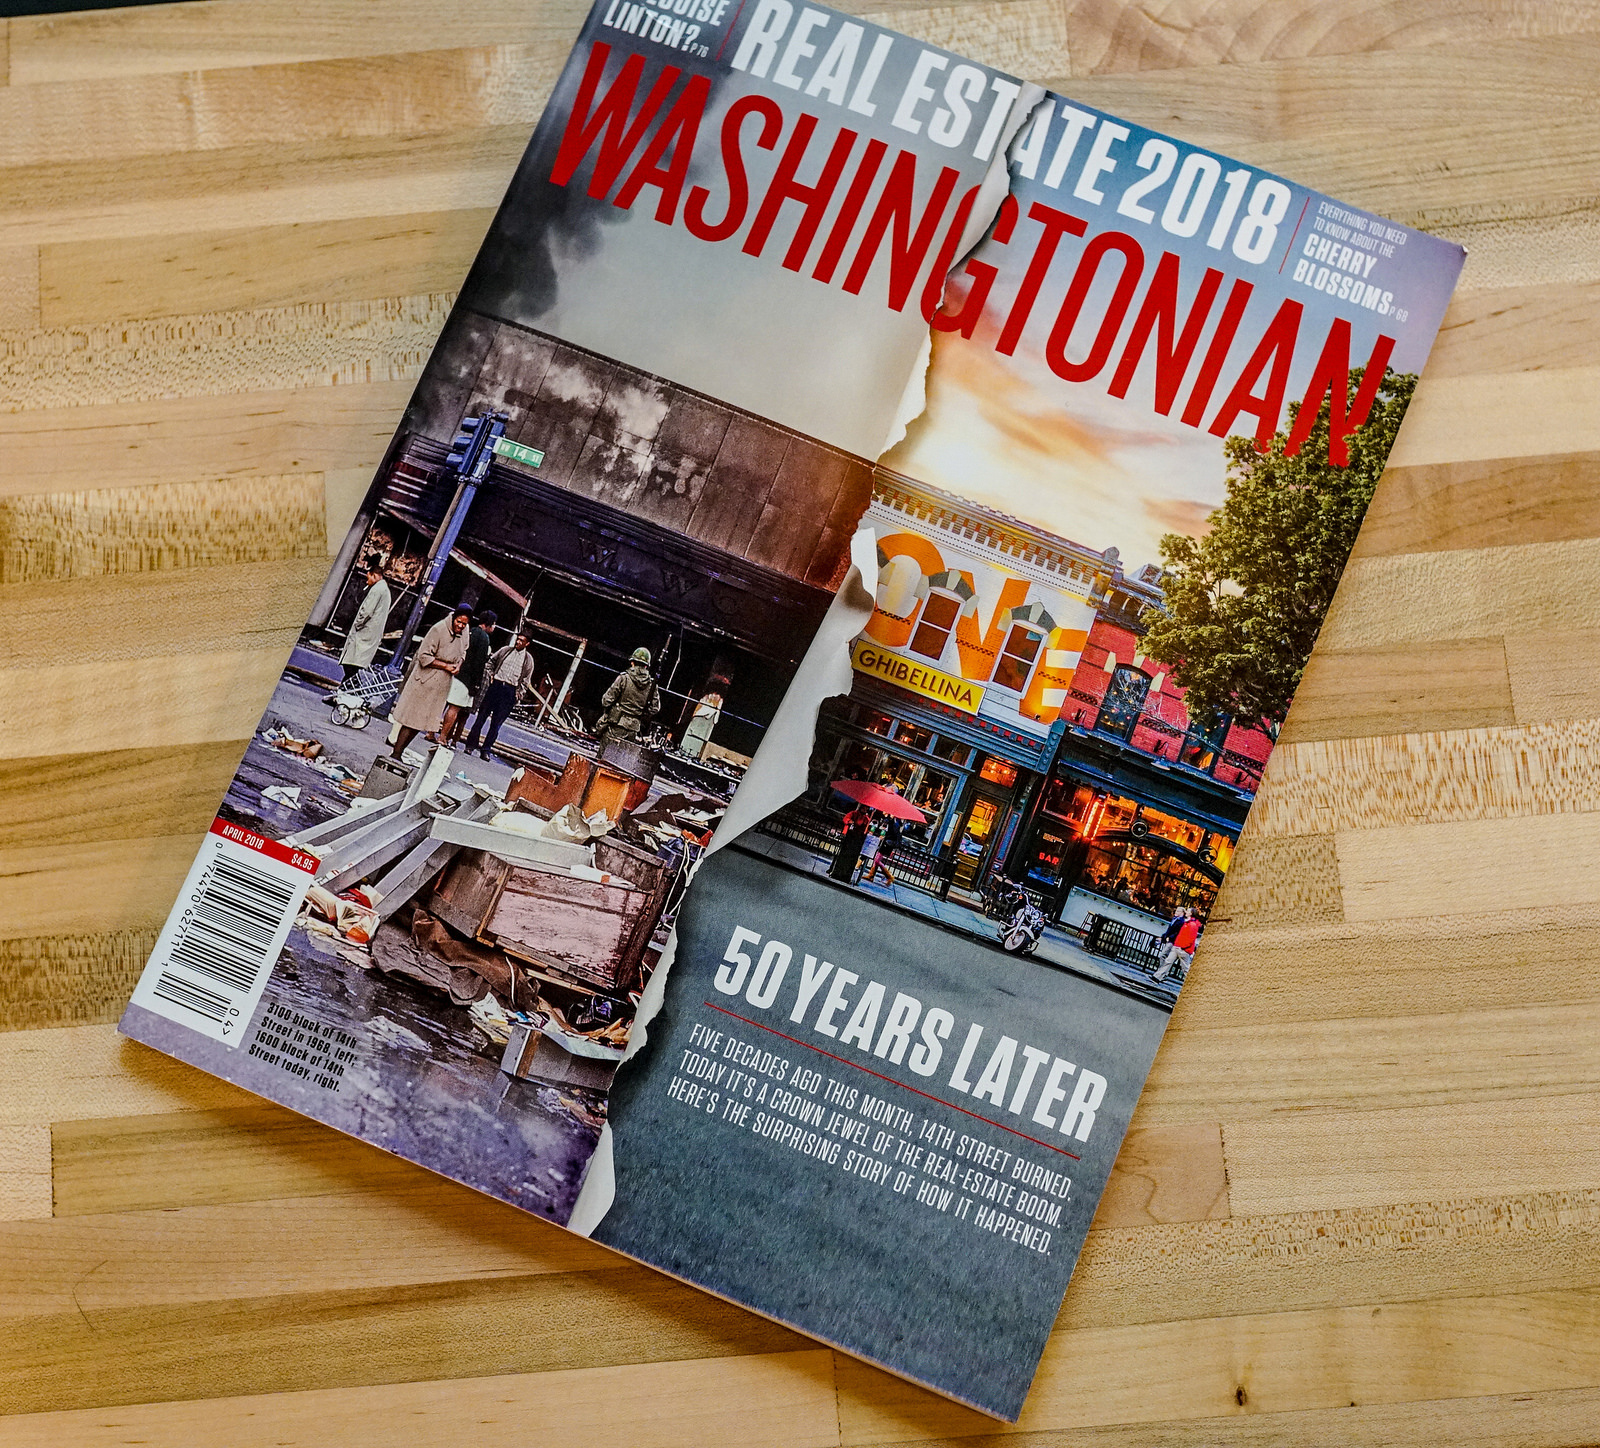 2018.04.02 Washingtonian April 2018 Issue, Washington, DC USA 2032